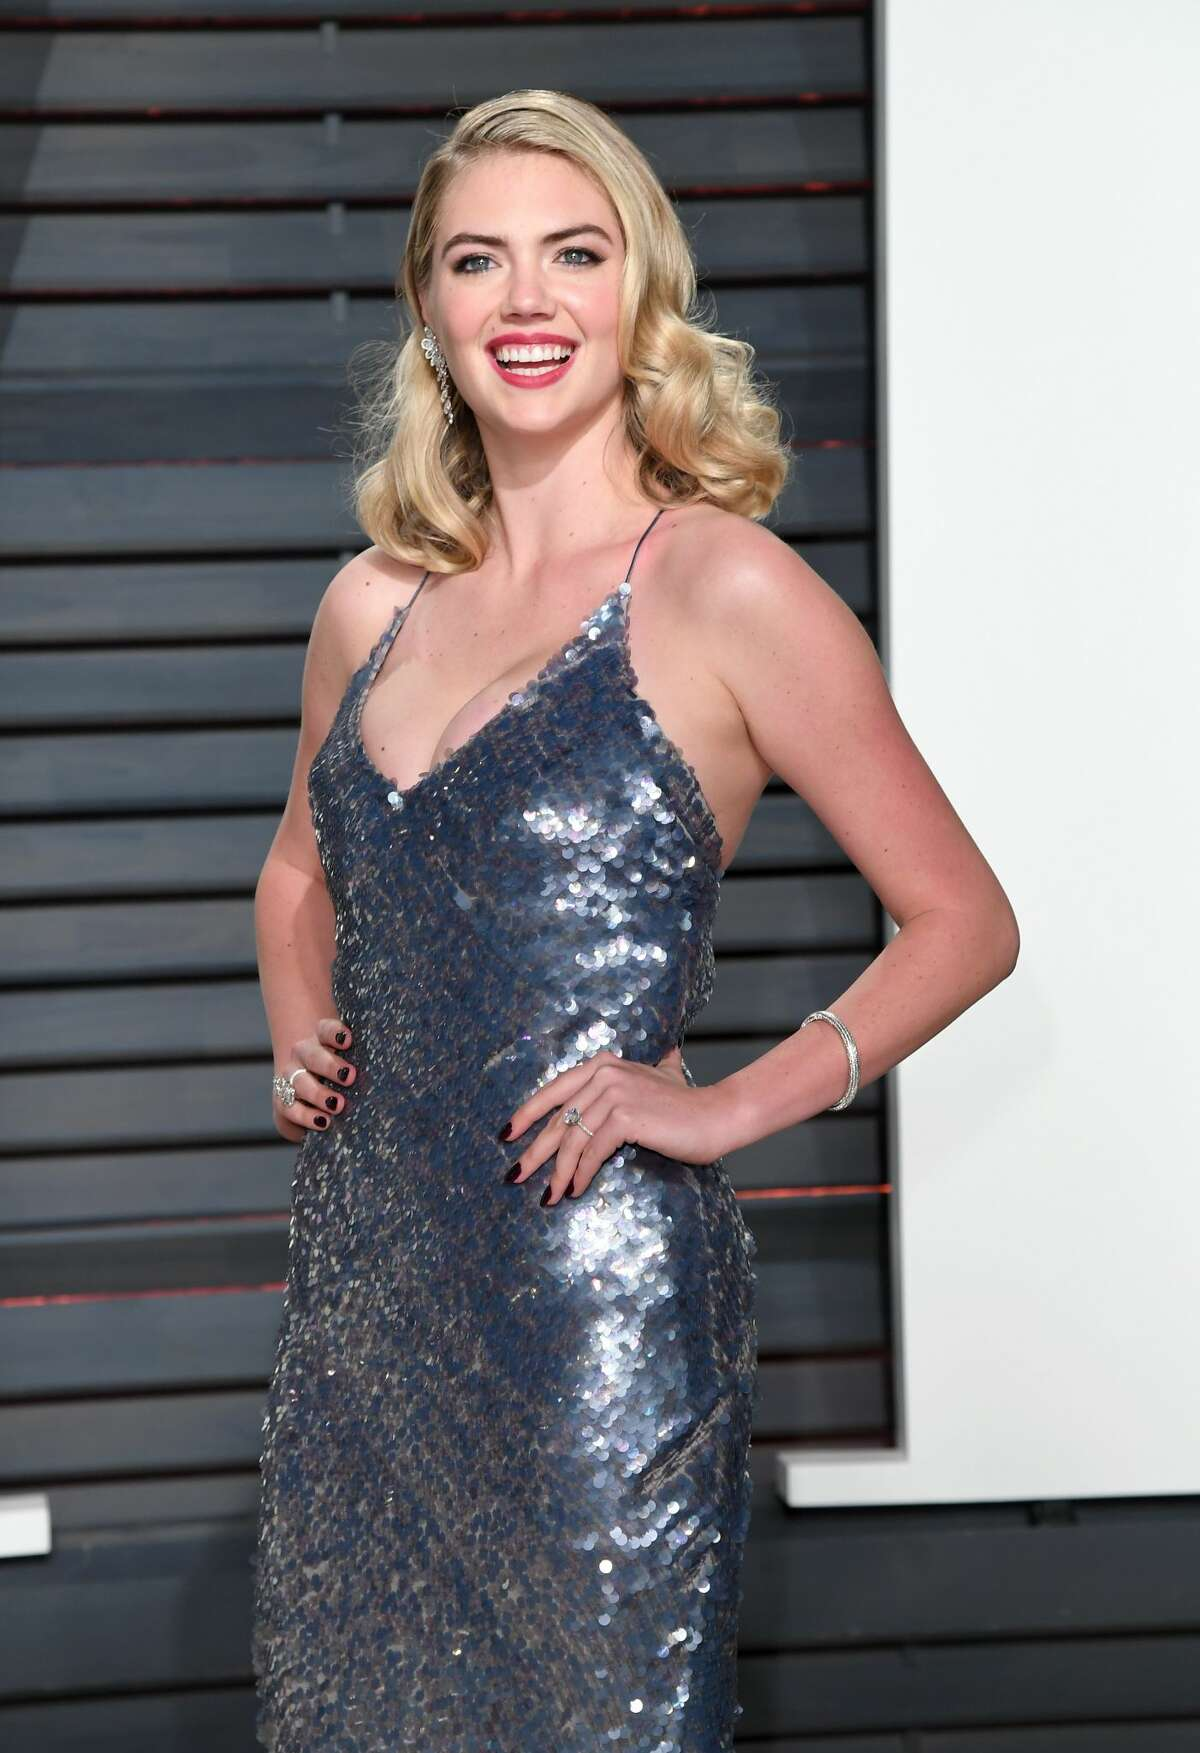 BEVERLY HILLS, CA - FEBRUARY 26: Kate Upton arrives for the Vanity Fair Oscar Party hosted by Graydon Carter at the Wallis Annenberg Center for the Performing Arts on February 26, 2017 in Beverly Hills, California. (Photo by Karwai Tang/Getty Images)